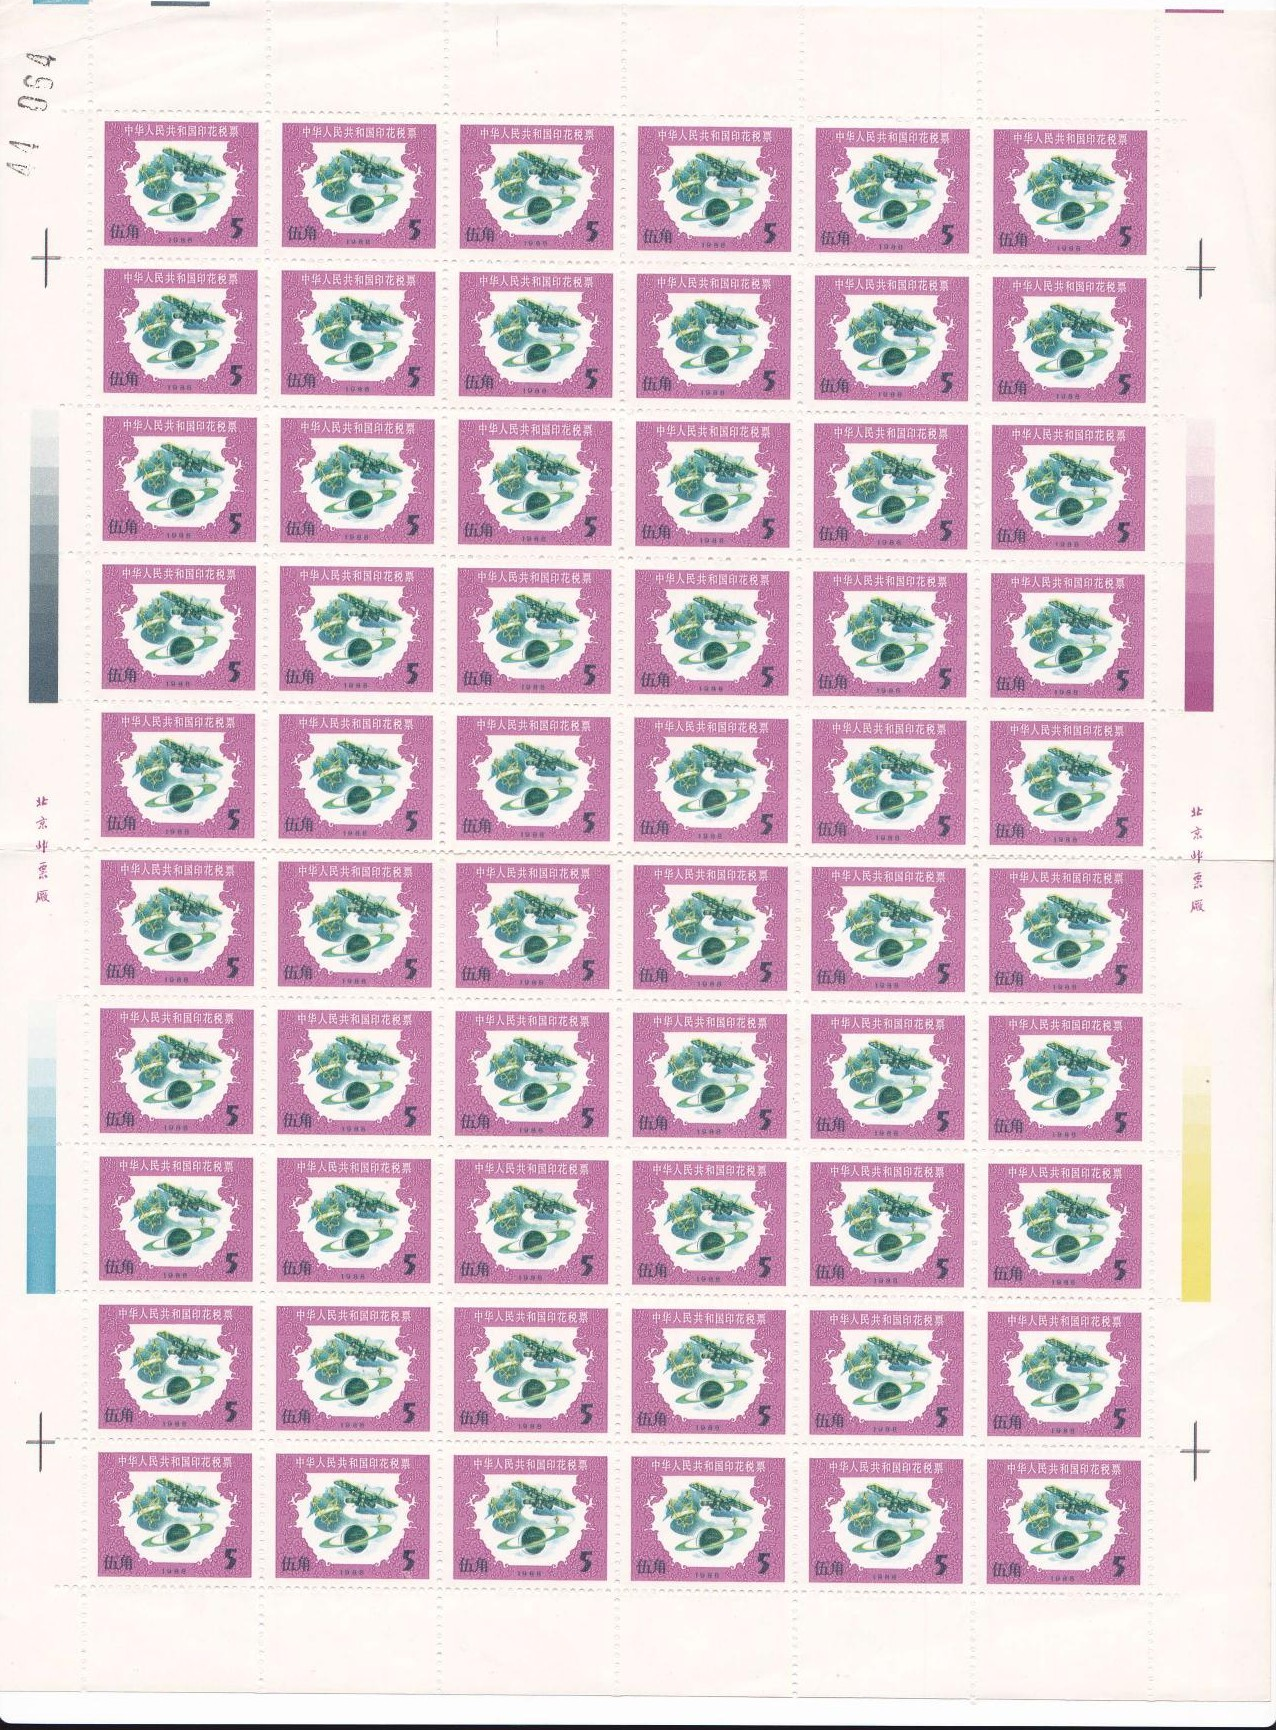 R2274, P.R.China Revenue Stamps, 50 Cents, Full Sheet 60 pcs, 1988